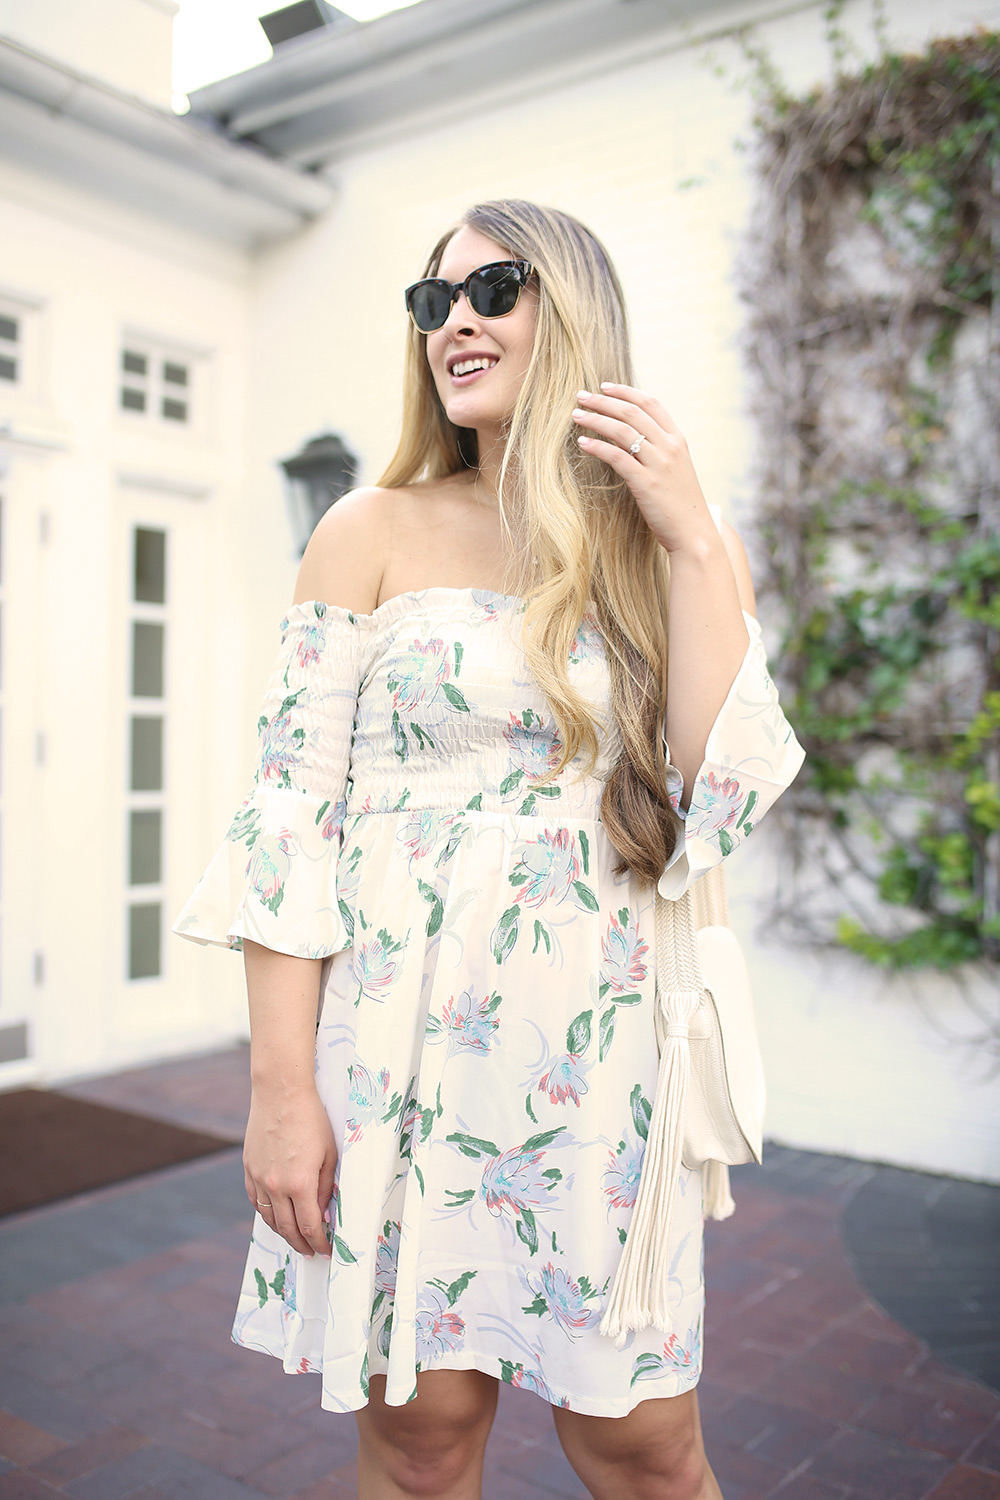 Affordable summer dress with bell sleeves from Asos. Floral summer dress. Off the shoulder dress with florals. Simple summer style